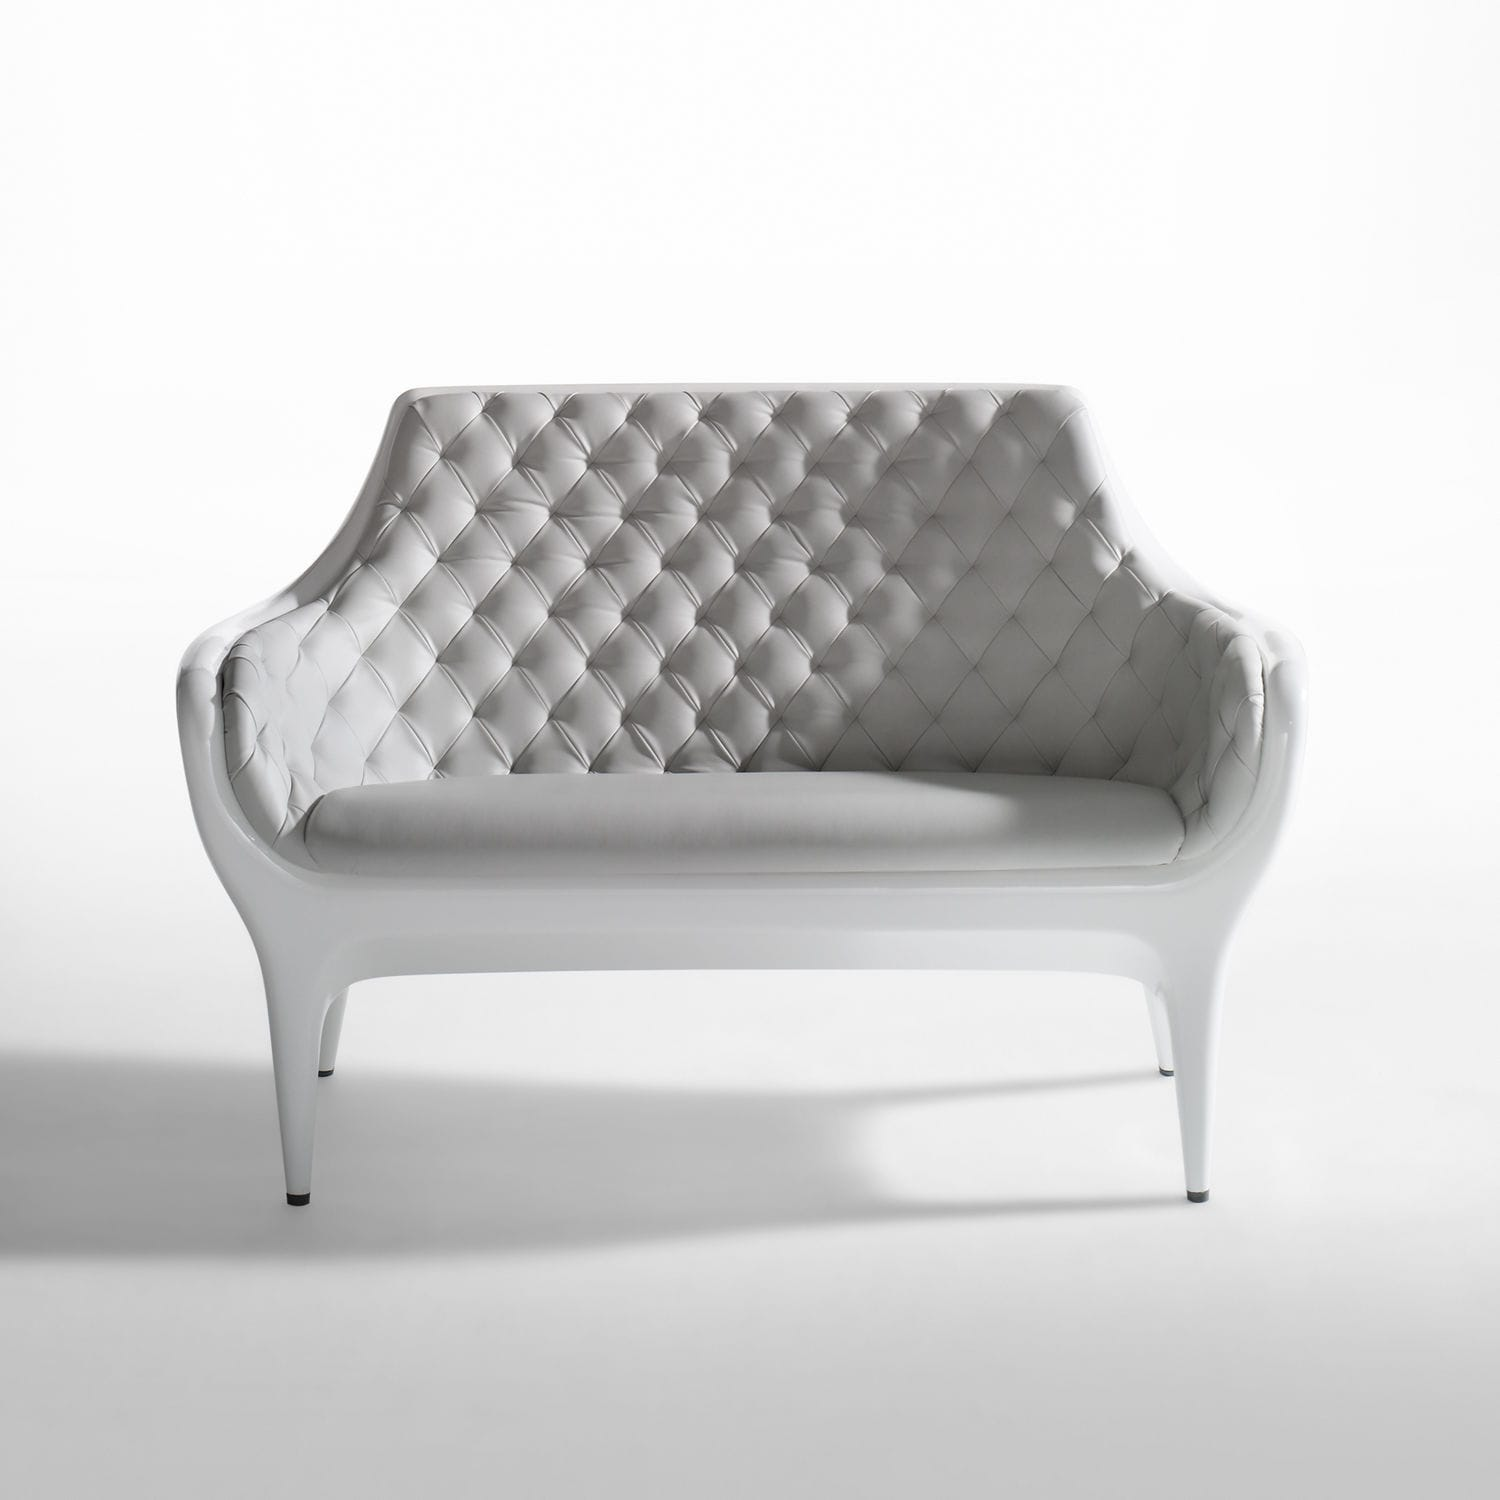 Contemporary Sofa / Leather / Polyethylene / By Jaime Hayon   SHOWTIME